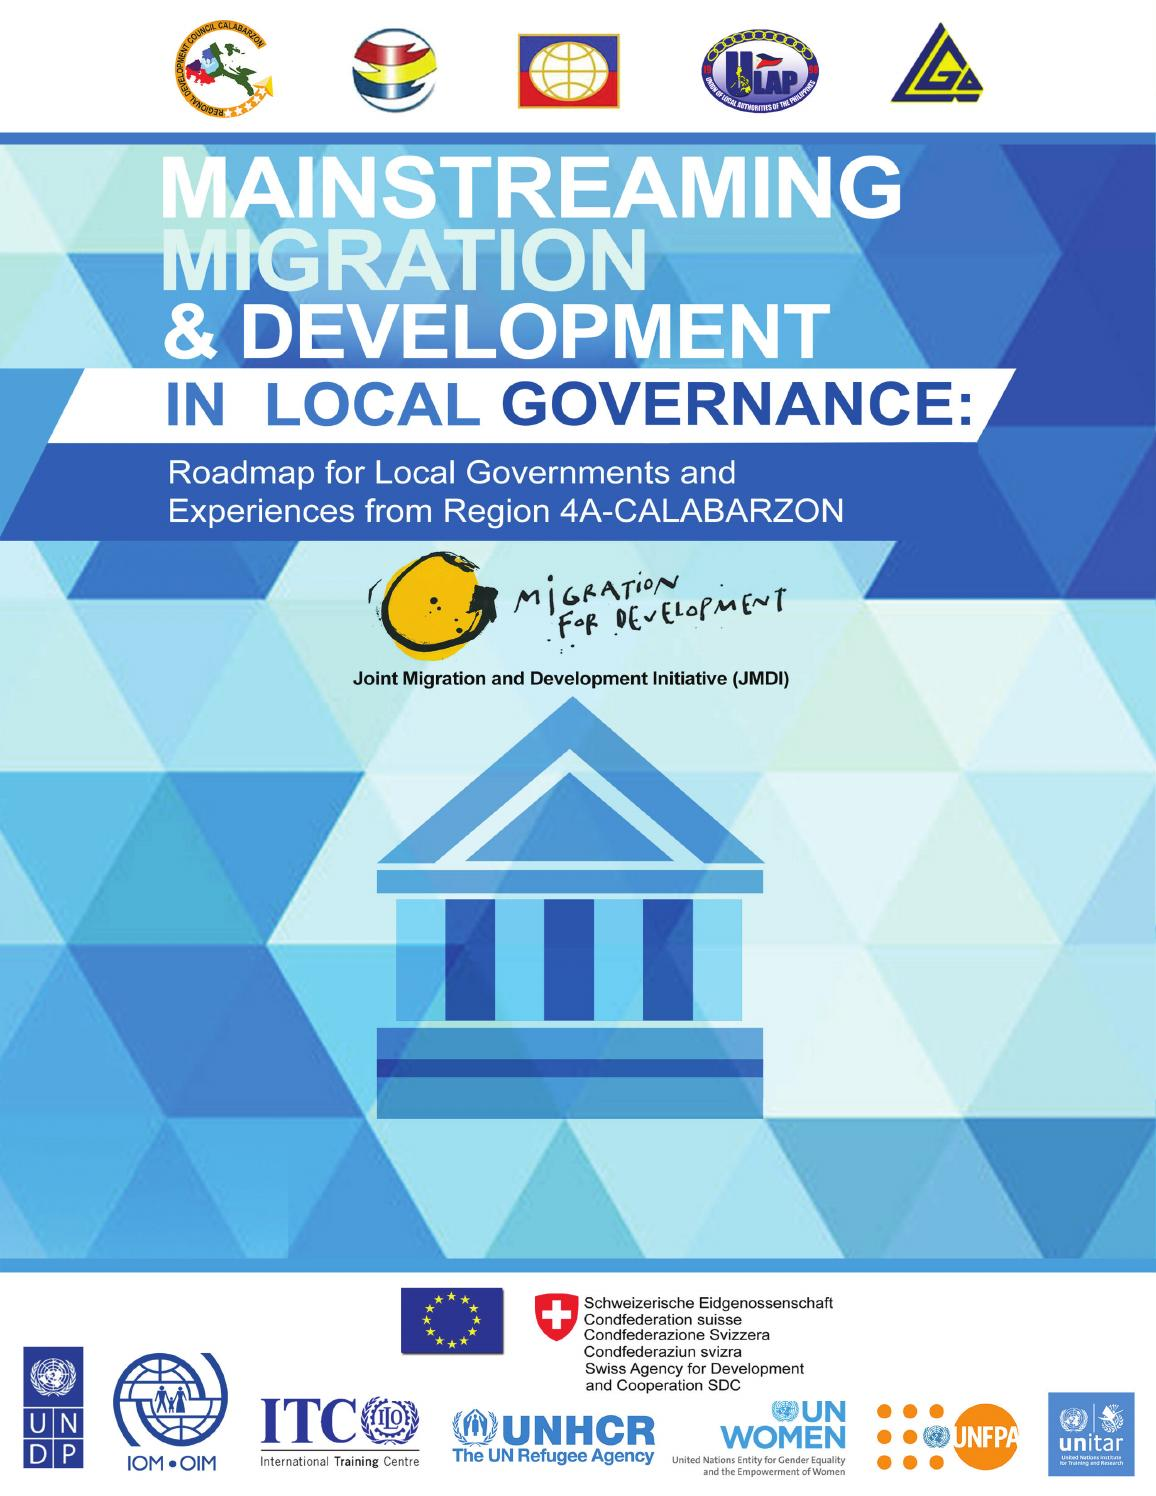 mainstreaming migration and development in local